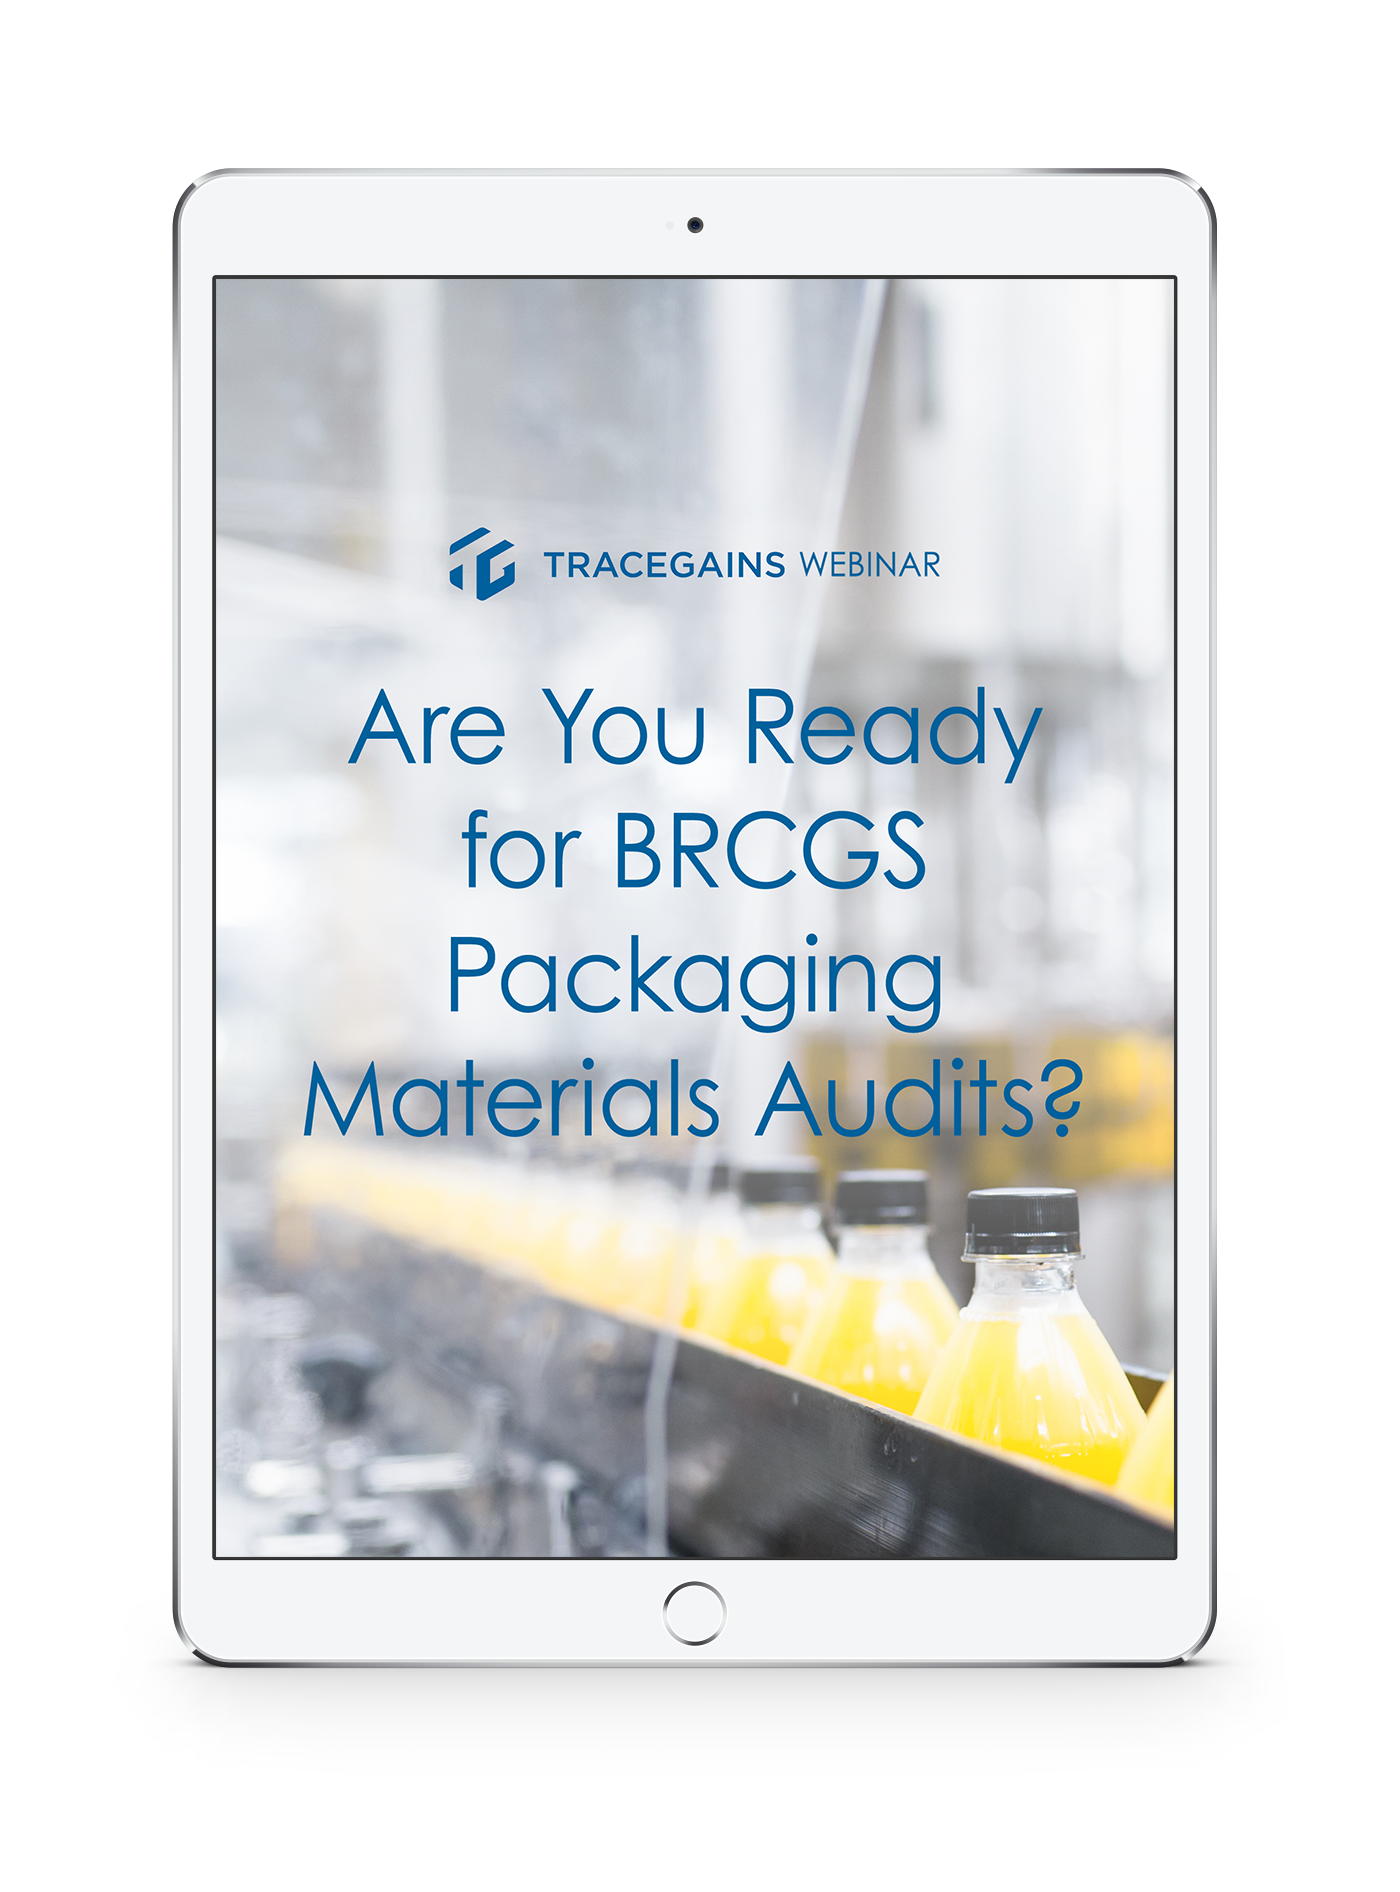 BRCGS-packaging-audits-webinar-ipad